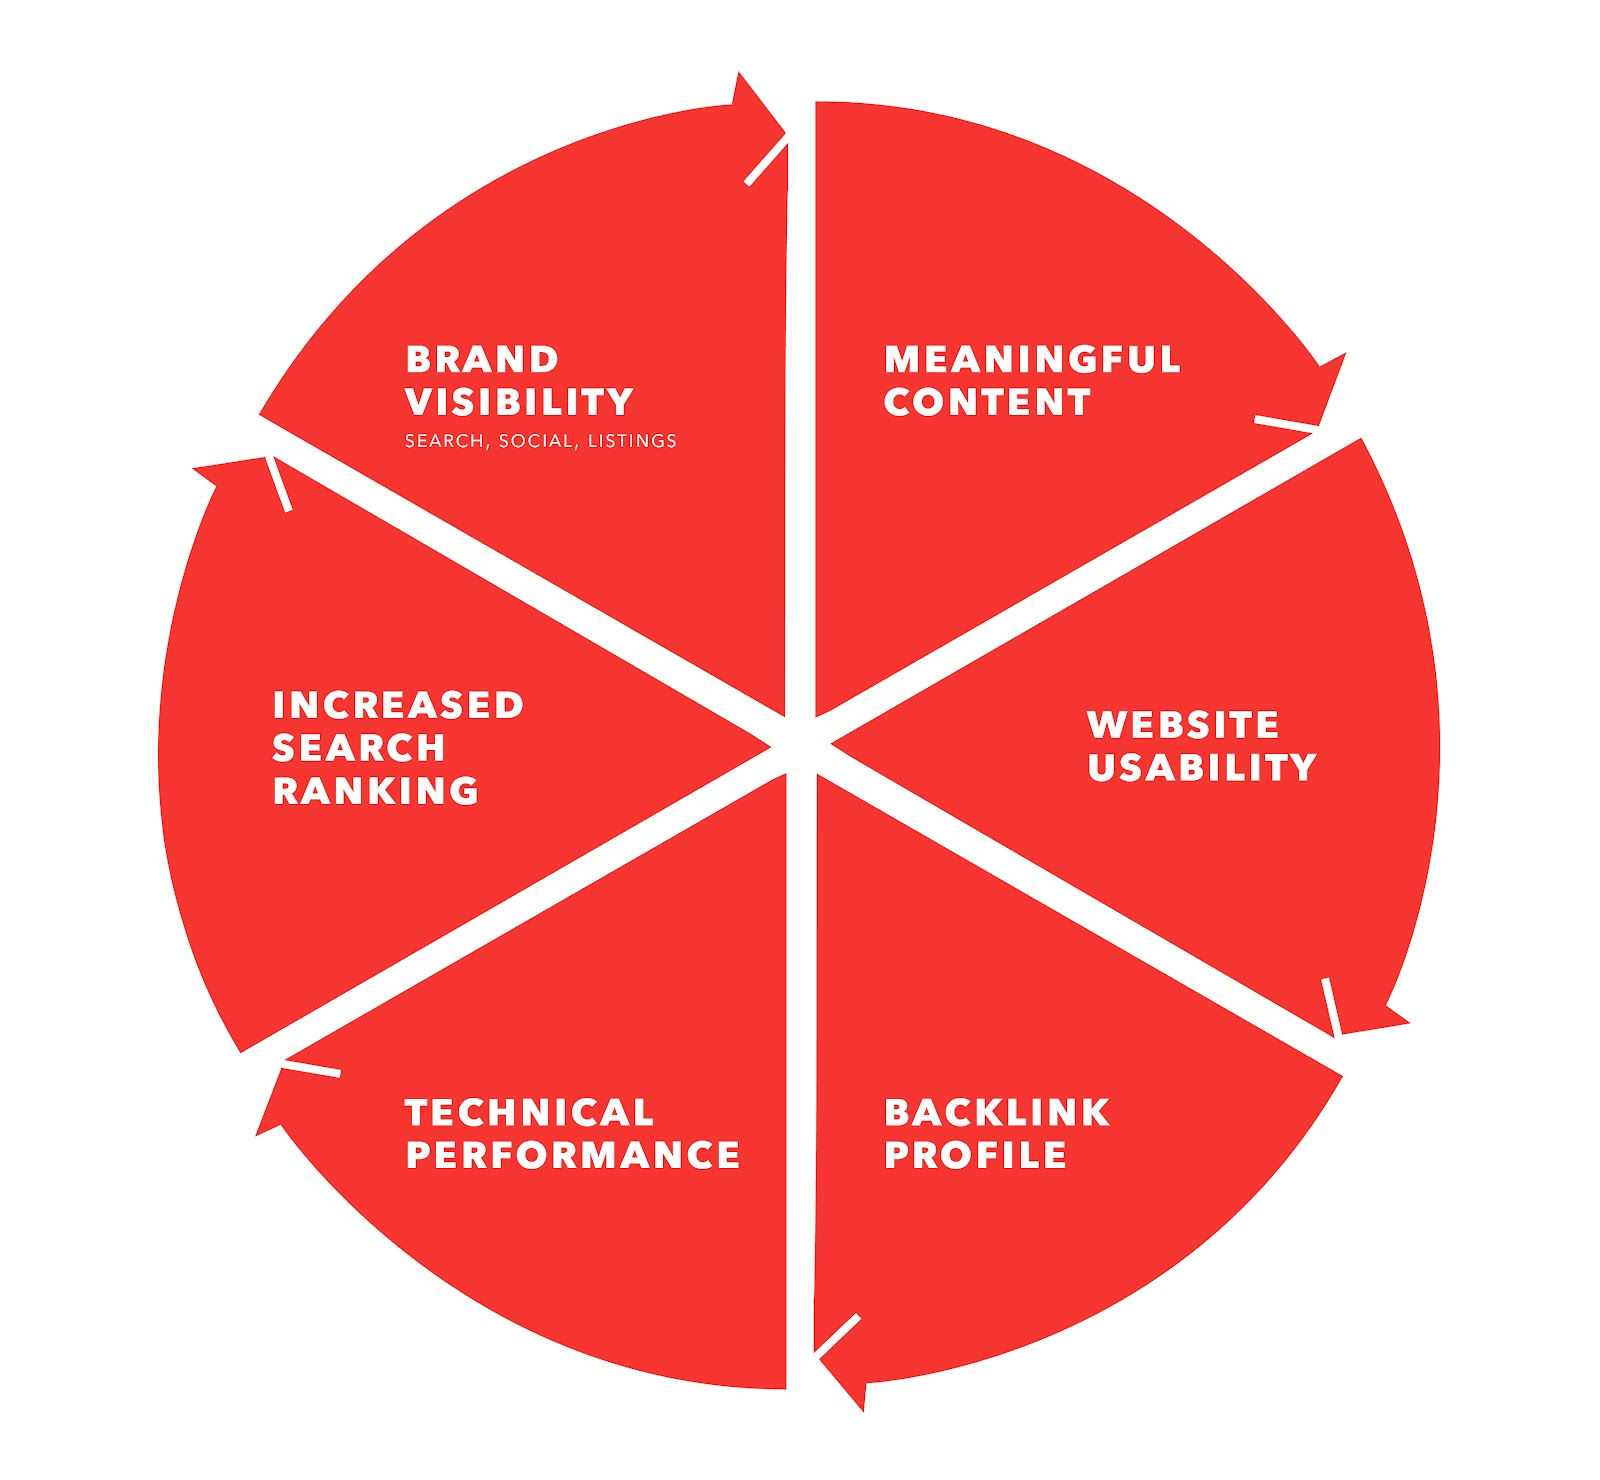 SEO process graph: Brand visibility, content planning, user experience, backlinking, and technical performance.